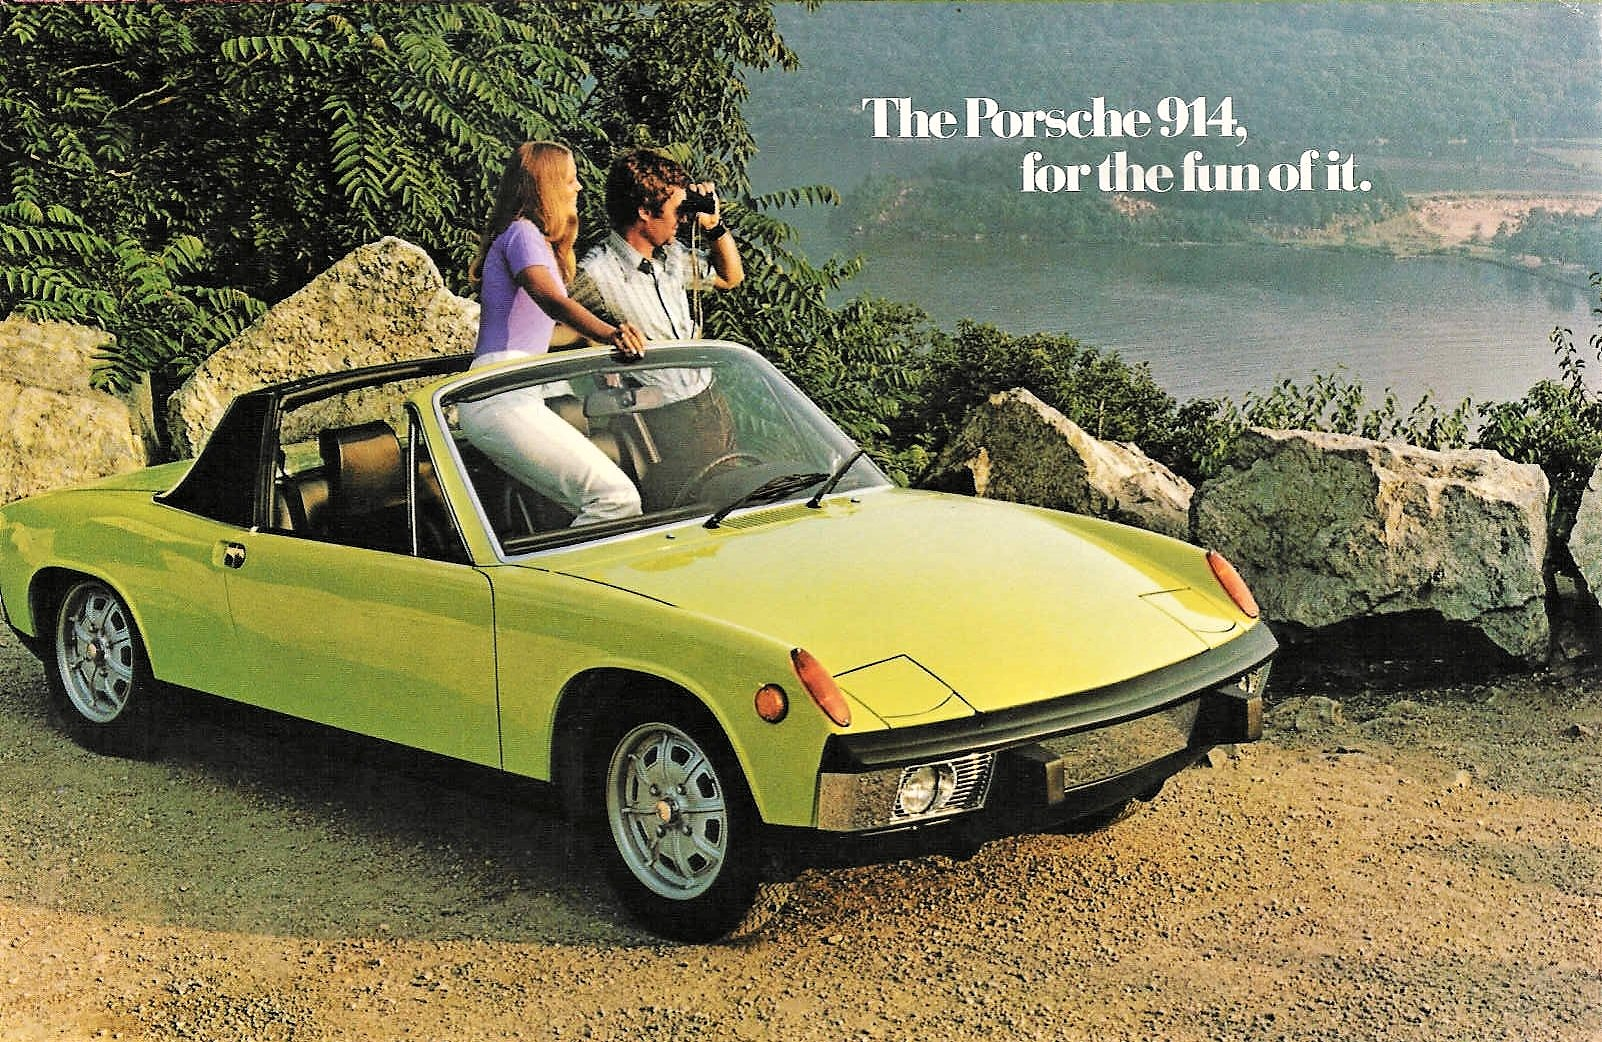 Porsche 914 50th Anniversary Is Mostly Just Being Ignored